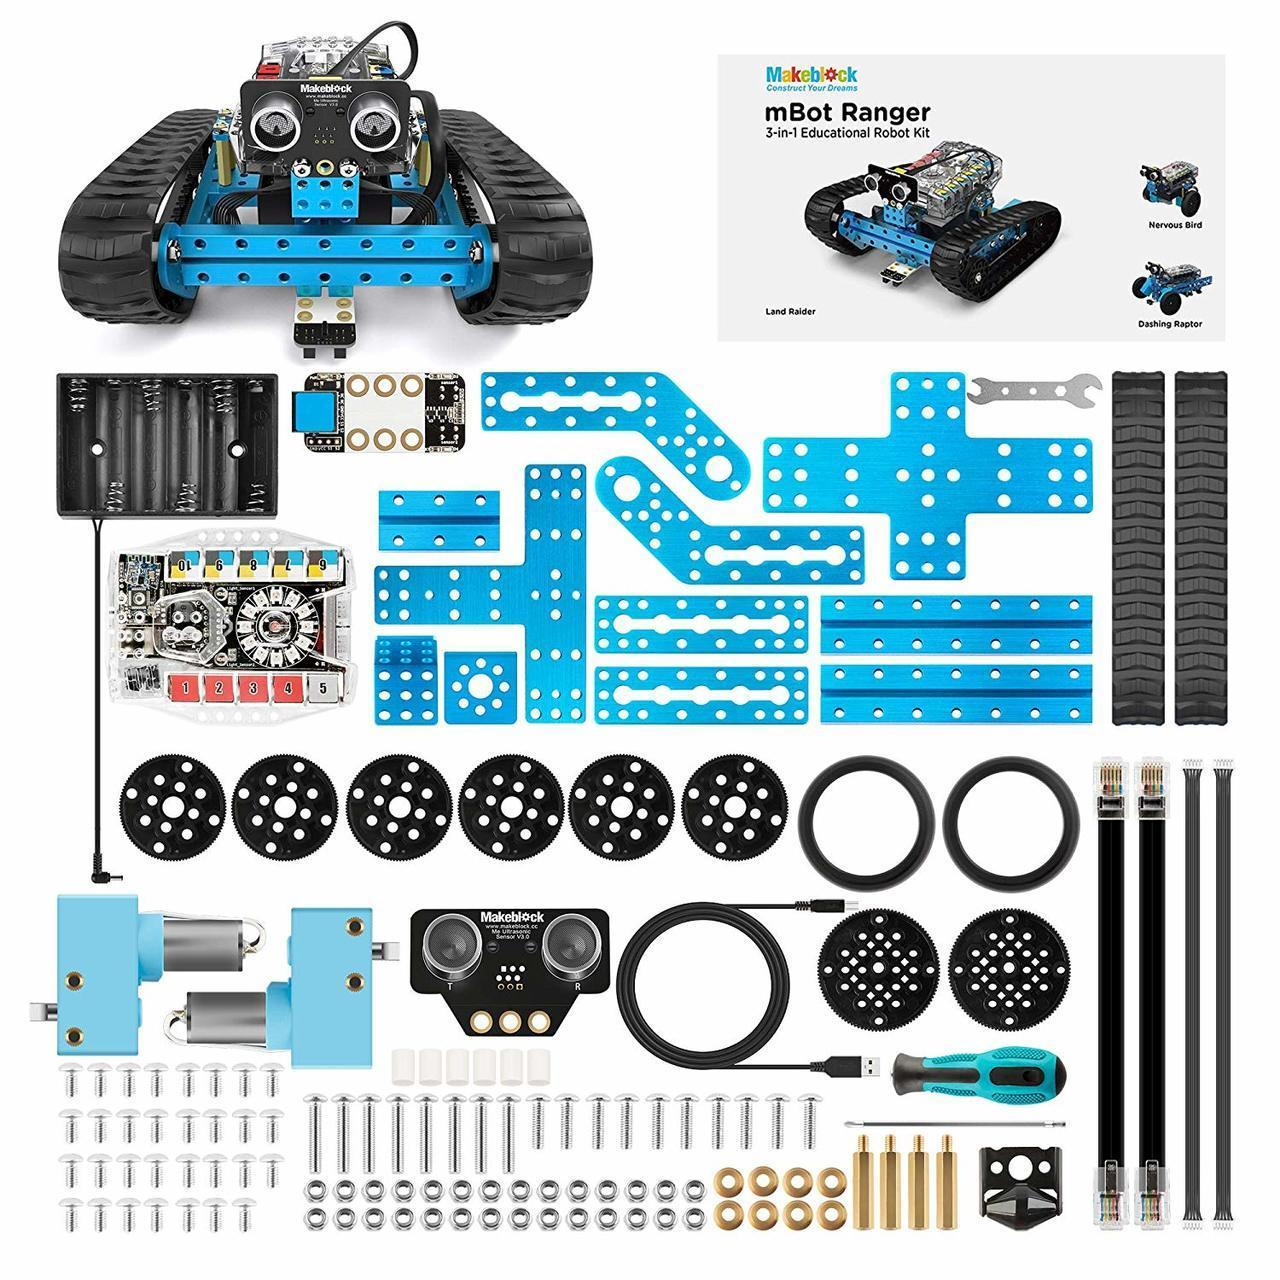 Makeblock mBot Ranger STEM Educational 3 in 1 Programmable Robotic Kit